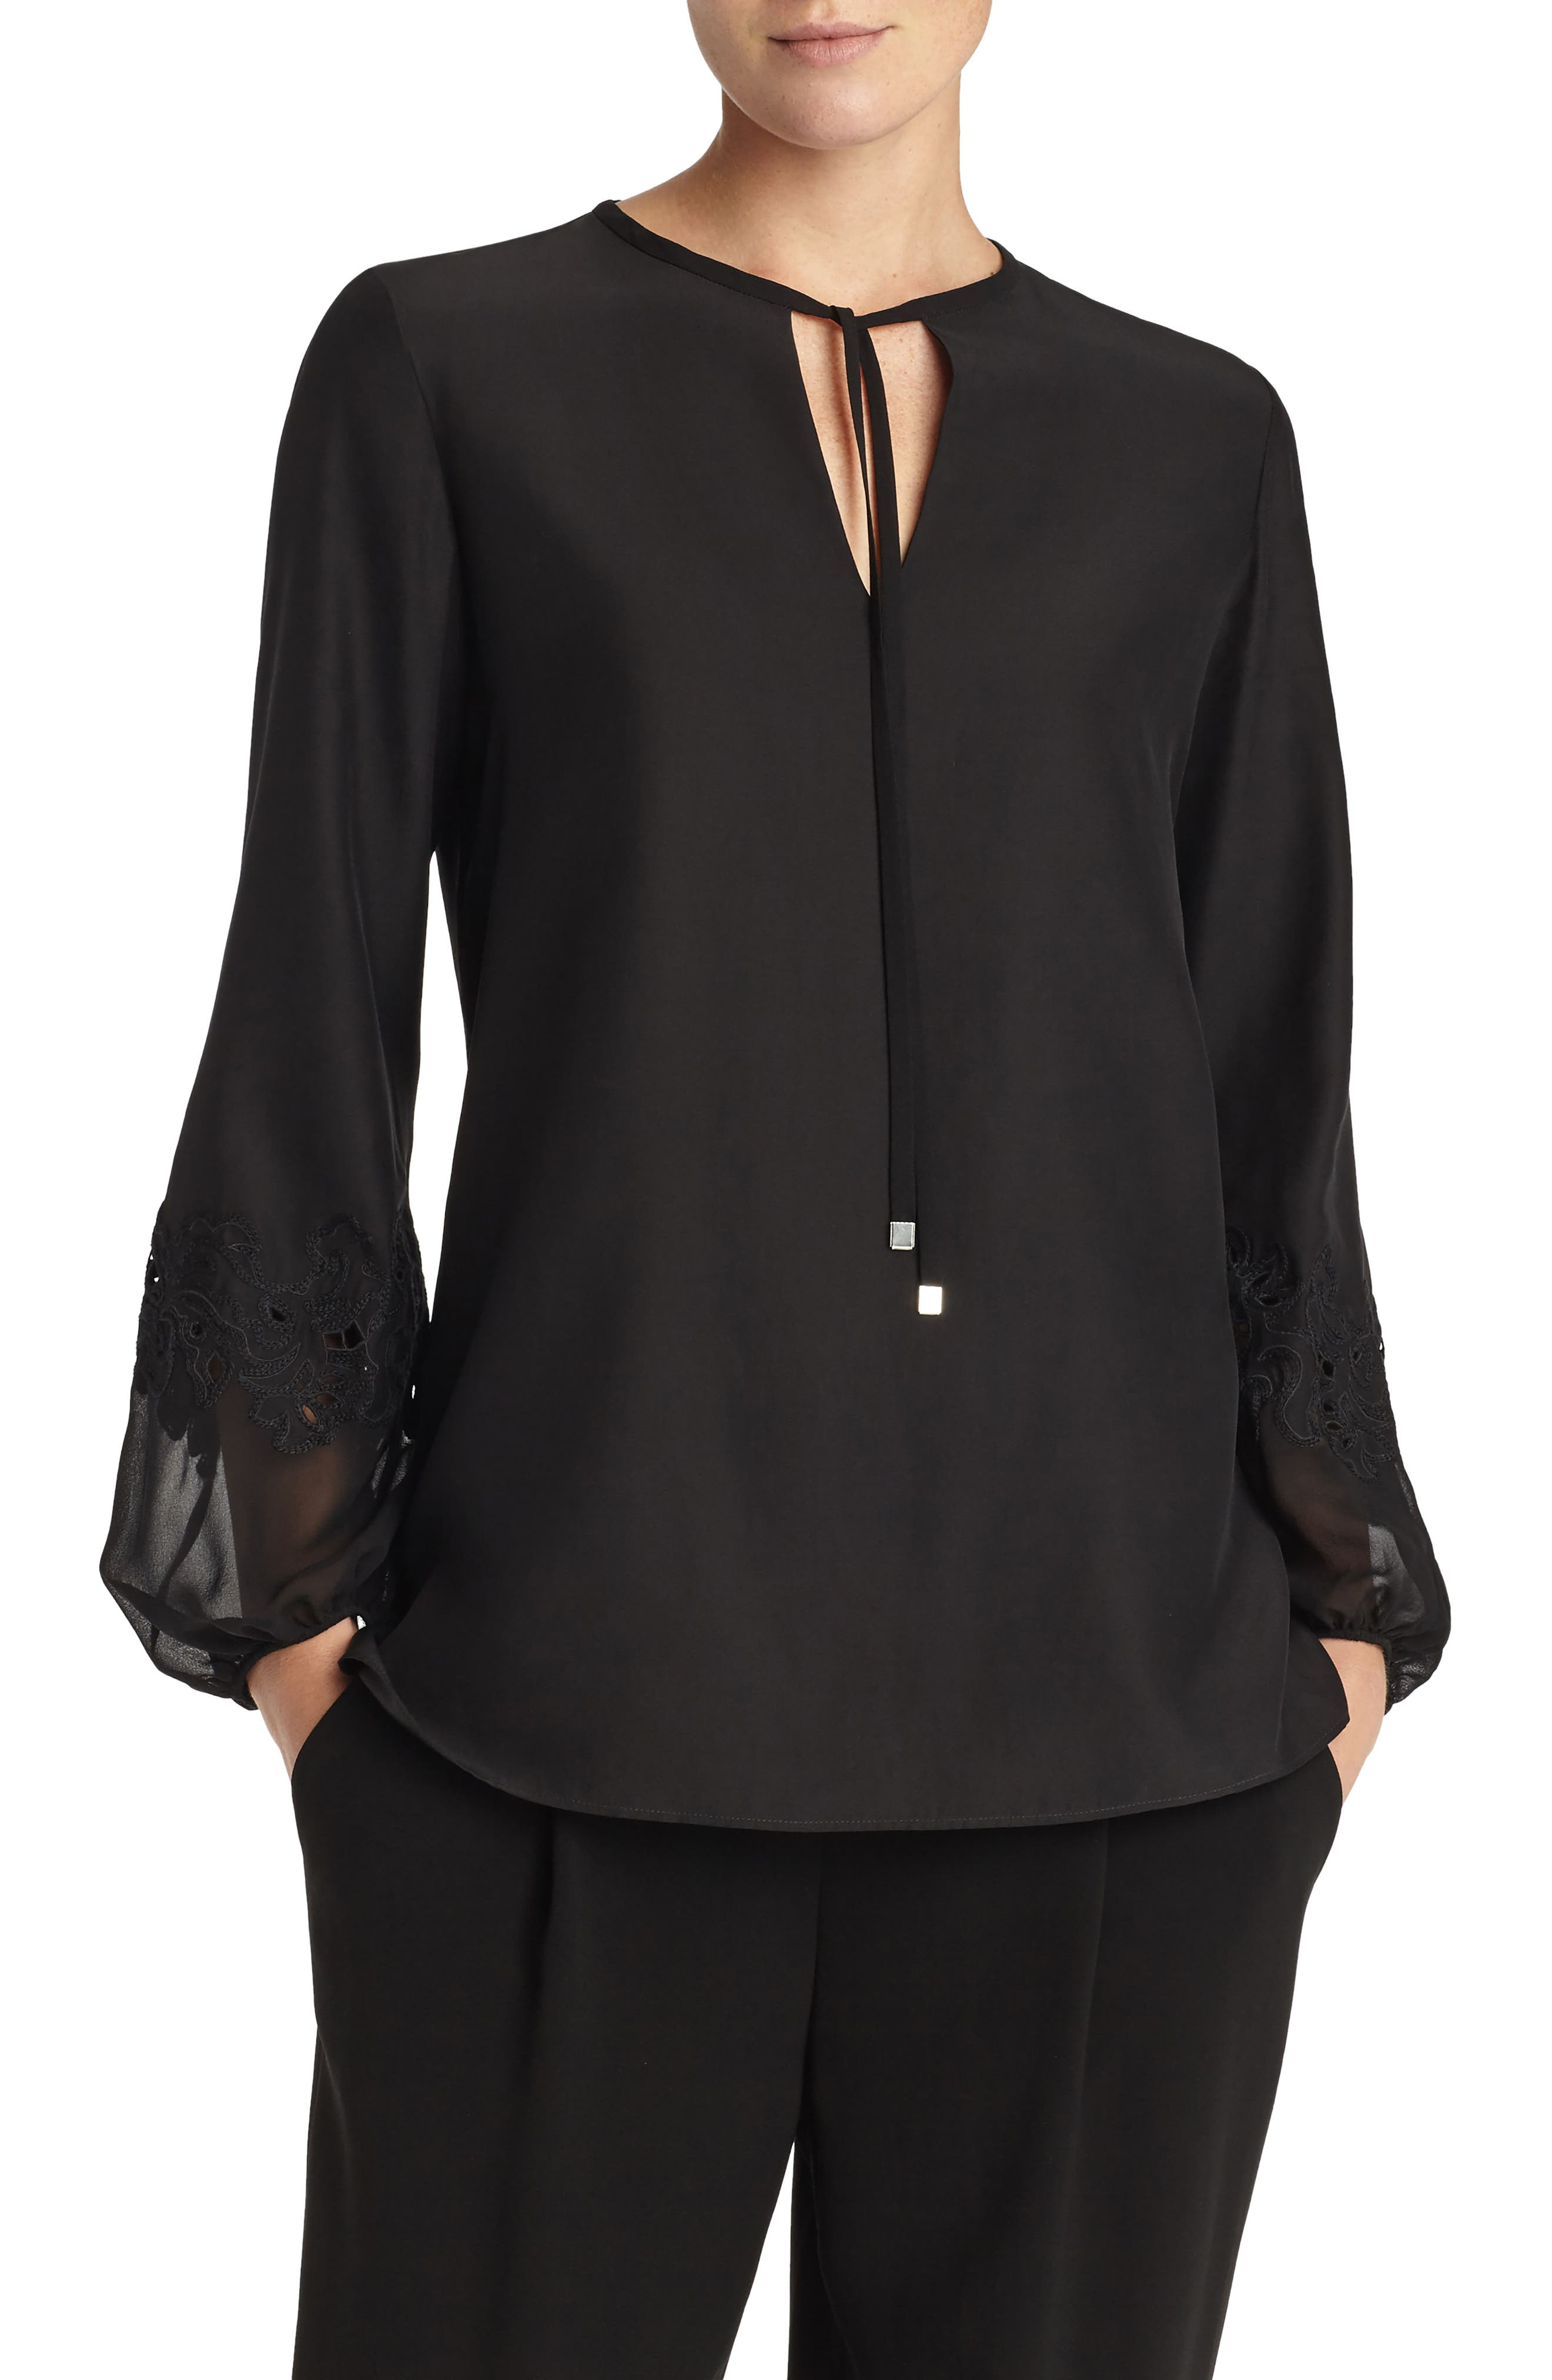 Eli Embroidered Cuff Silk Blouse,                             Main thumbnail 1, color,                             001